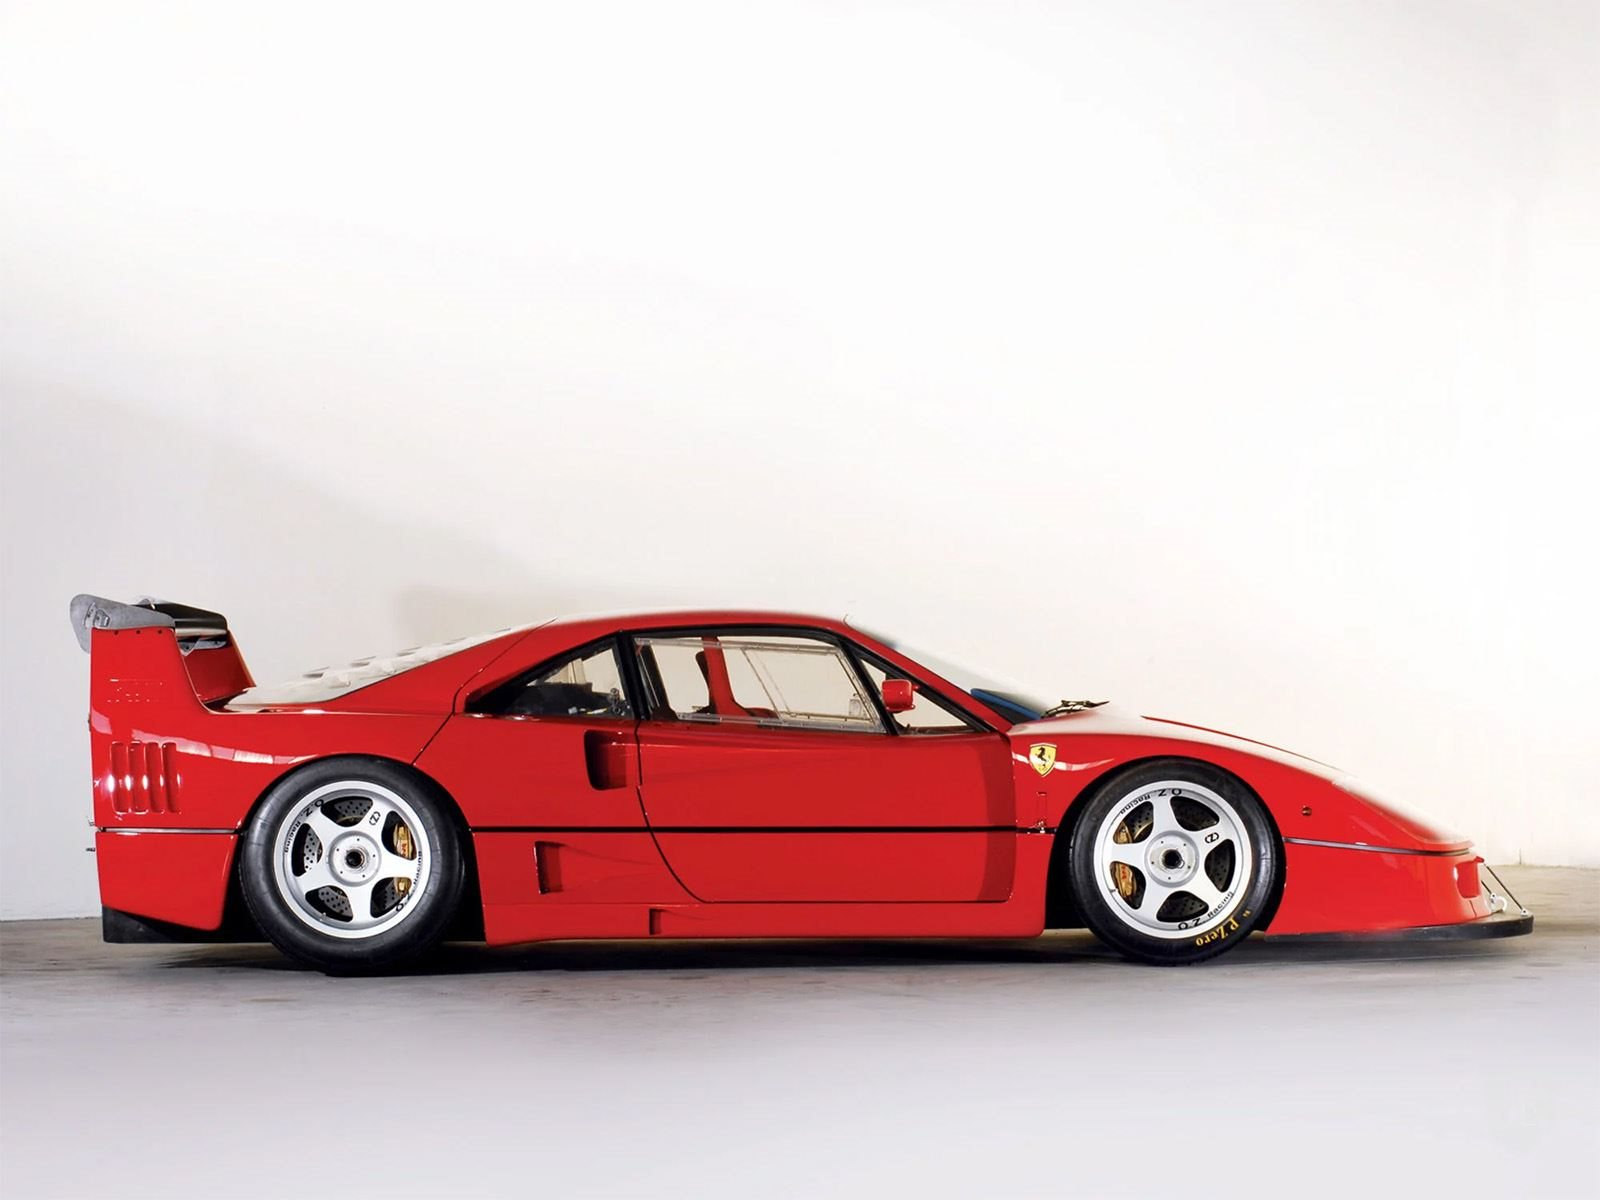 Extremely Rare Low-Mileage Ferrari F40 LM Looking For A New Home ...